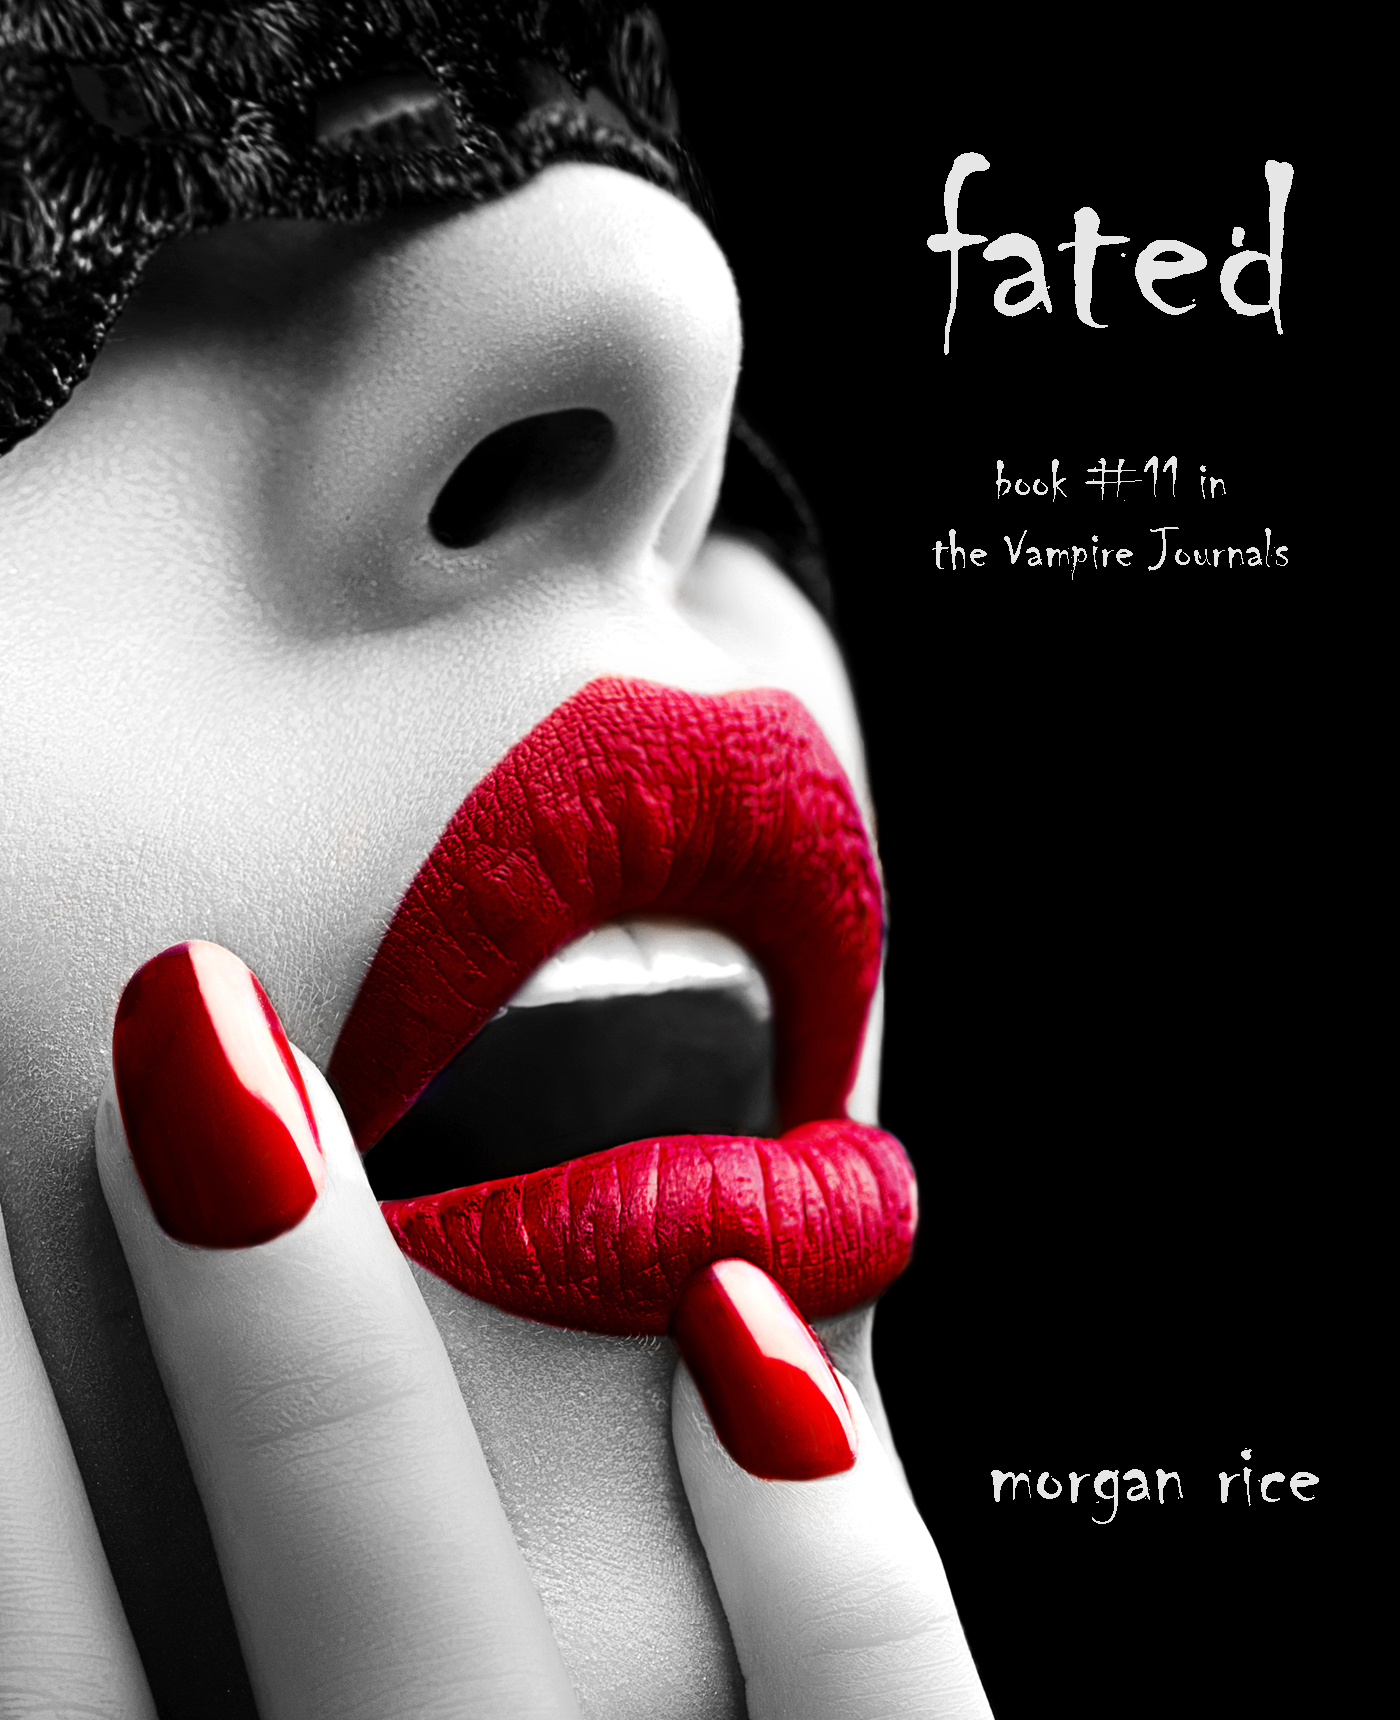 Morgan Rice - Fated (Book #11 in the Vampire Journals)